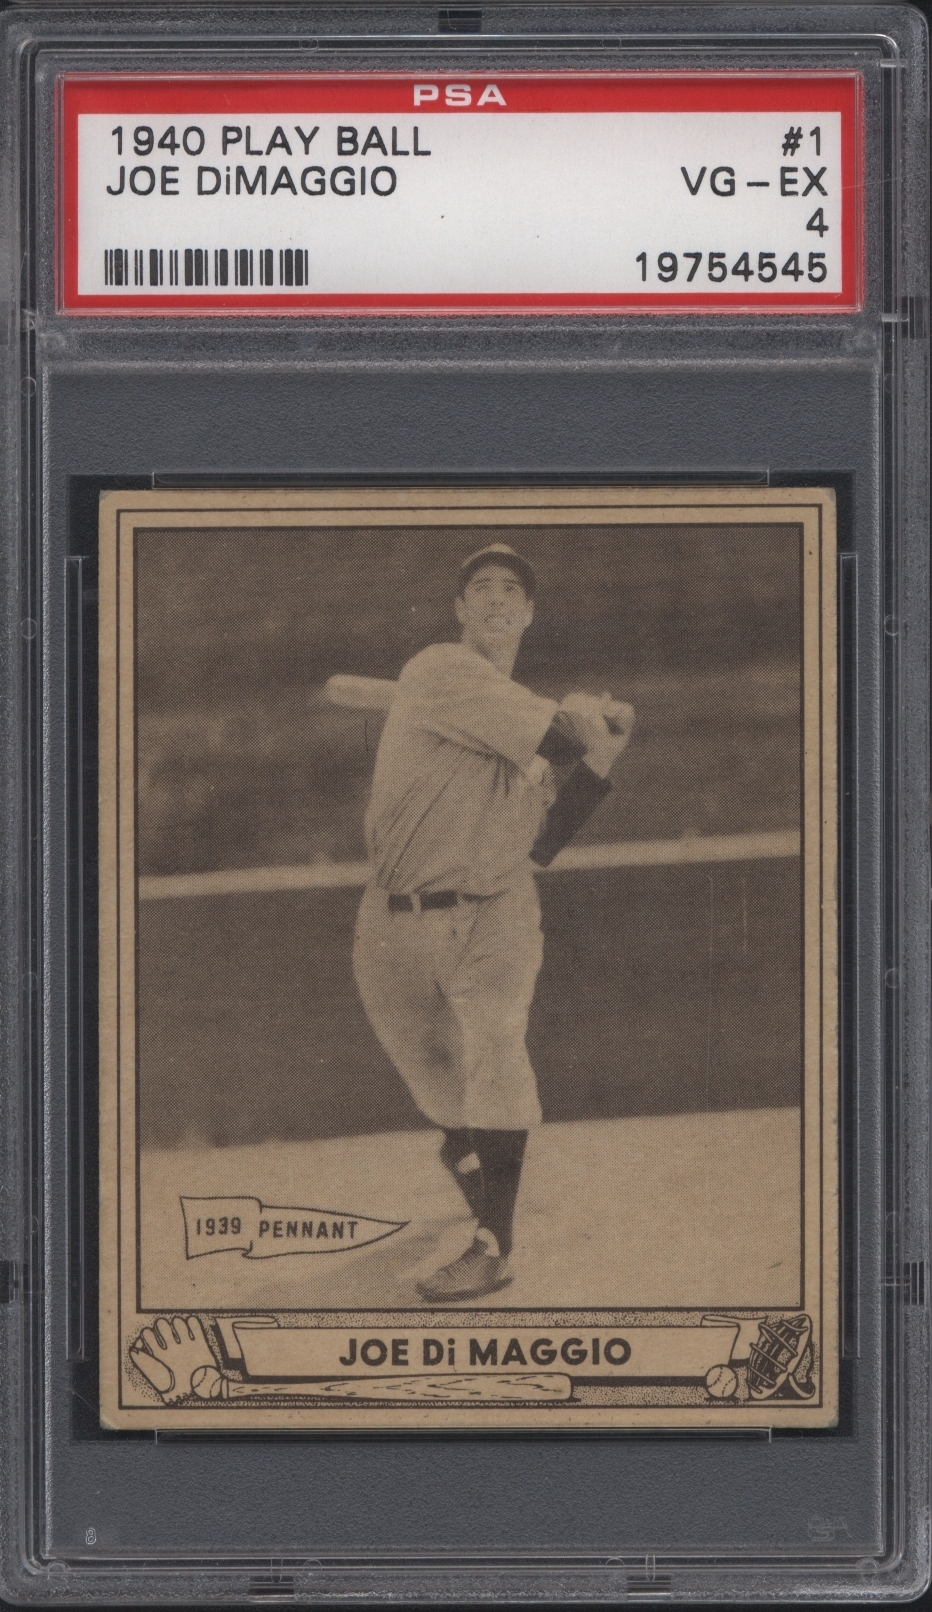 1940 Play Ball Joe DiMaggio